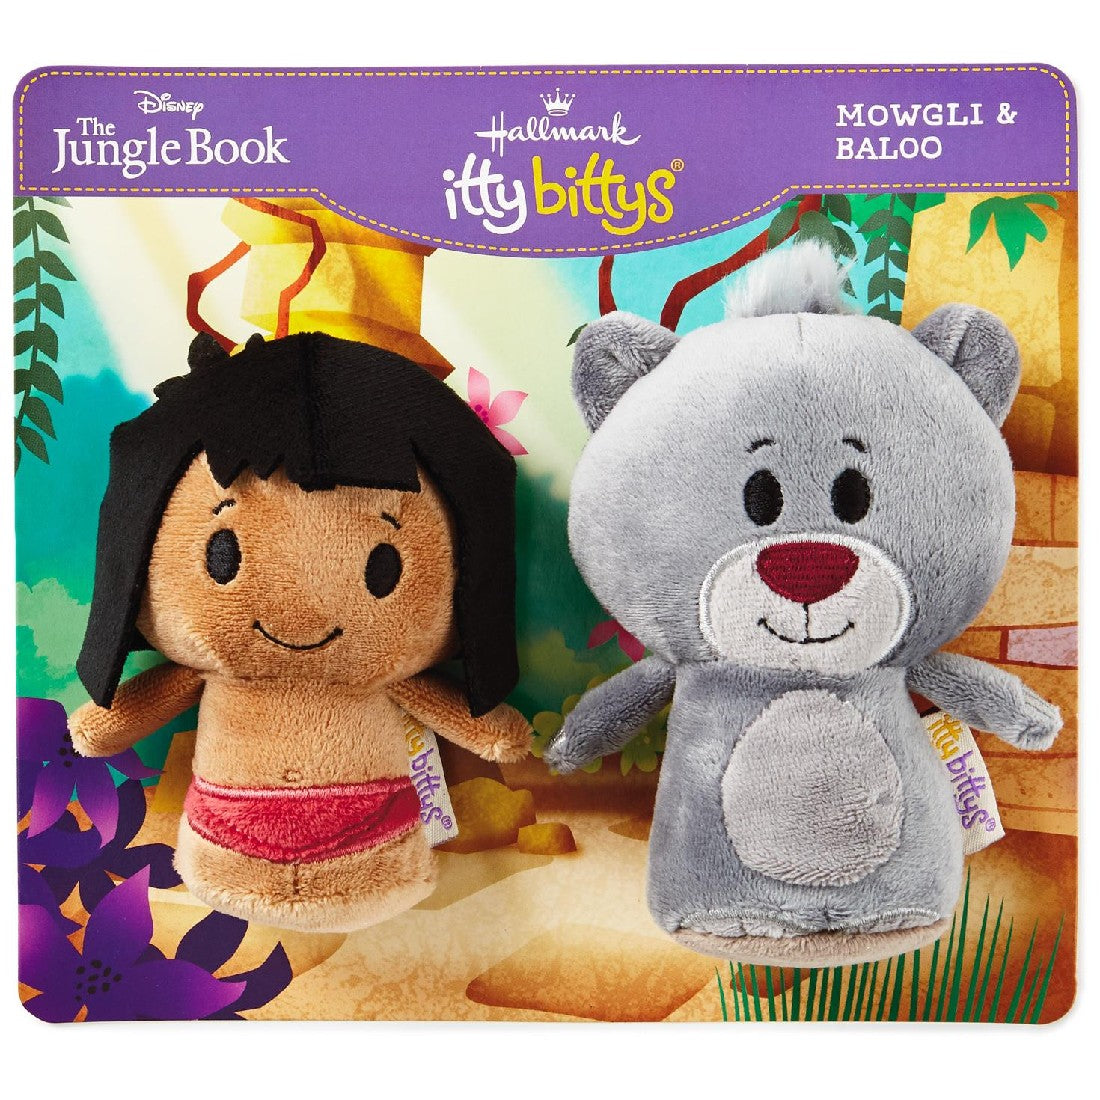 MOWGLI & BALOO JUNGLE BOOK TWIN PACK